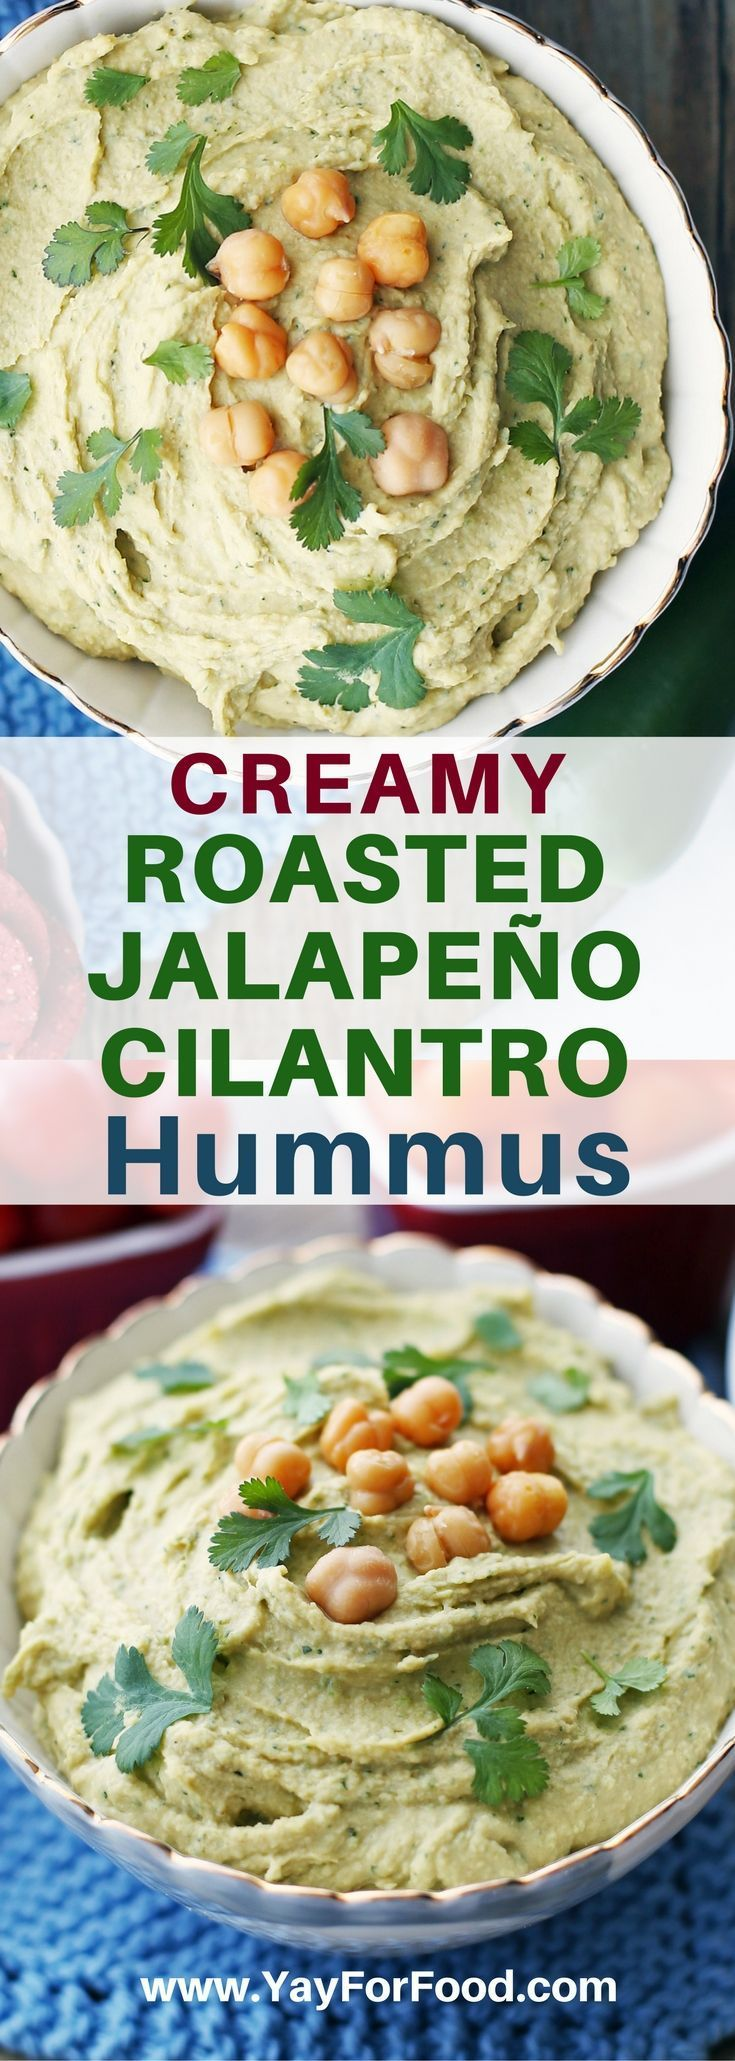 Delicious and creamy! Try this easy homemade spicy jalapeño and cilantro hummus! Perfect as a dip for vegetables and crackers or as a condiment in wraps and sandwiches. #ForVegetarians